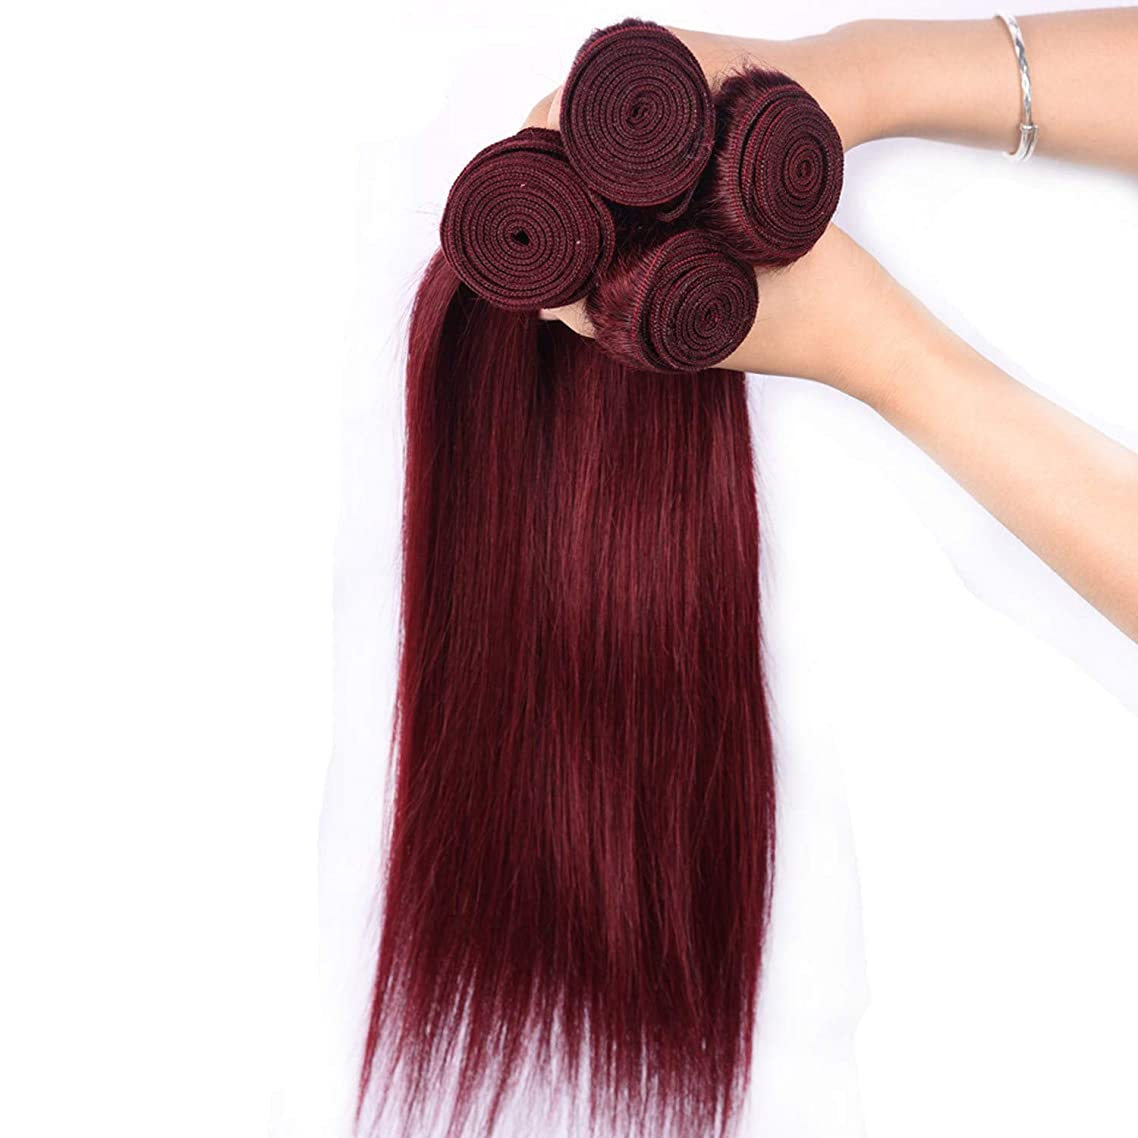 Pre-colored Peruvian Hair 4 Bundles 99j Burgundy Non-remy Human Hair Extensions Wine,10 10 10 10